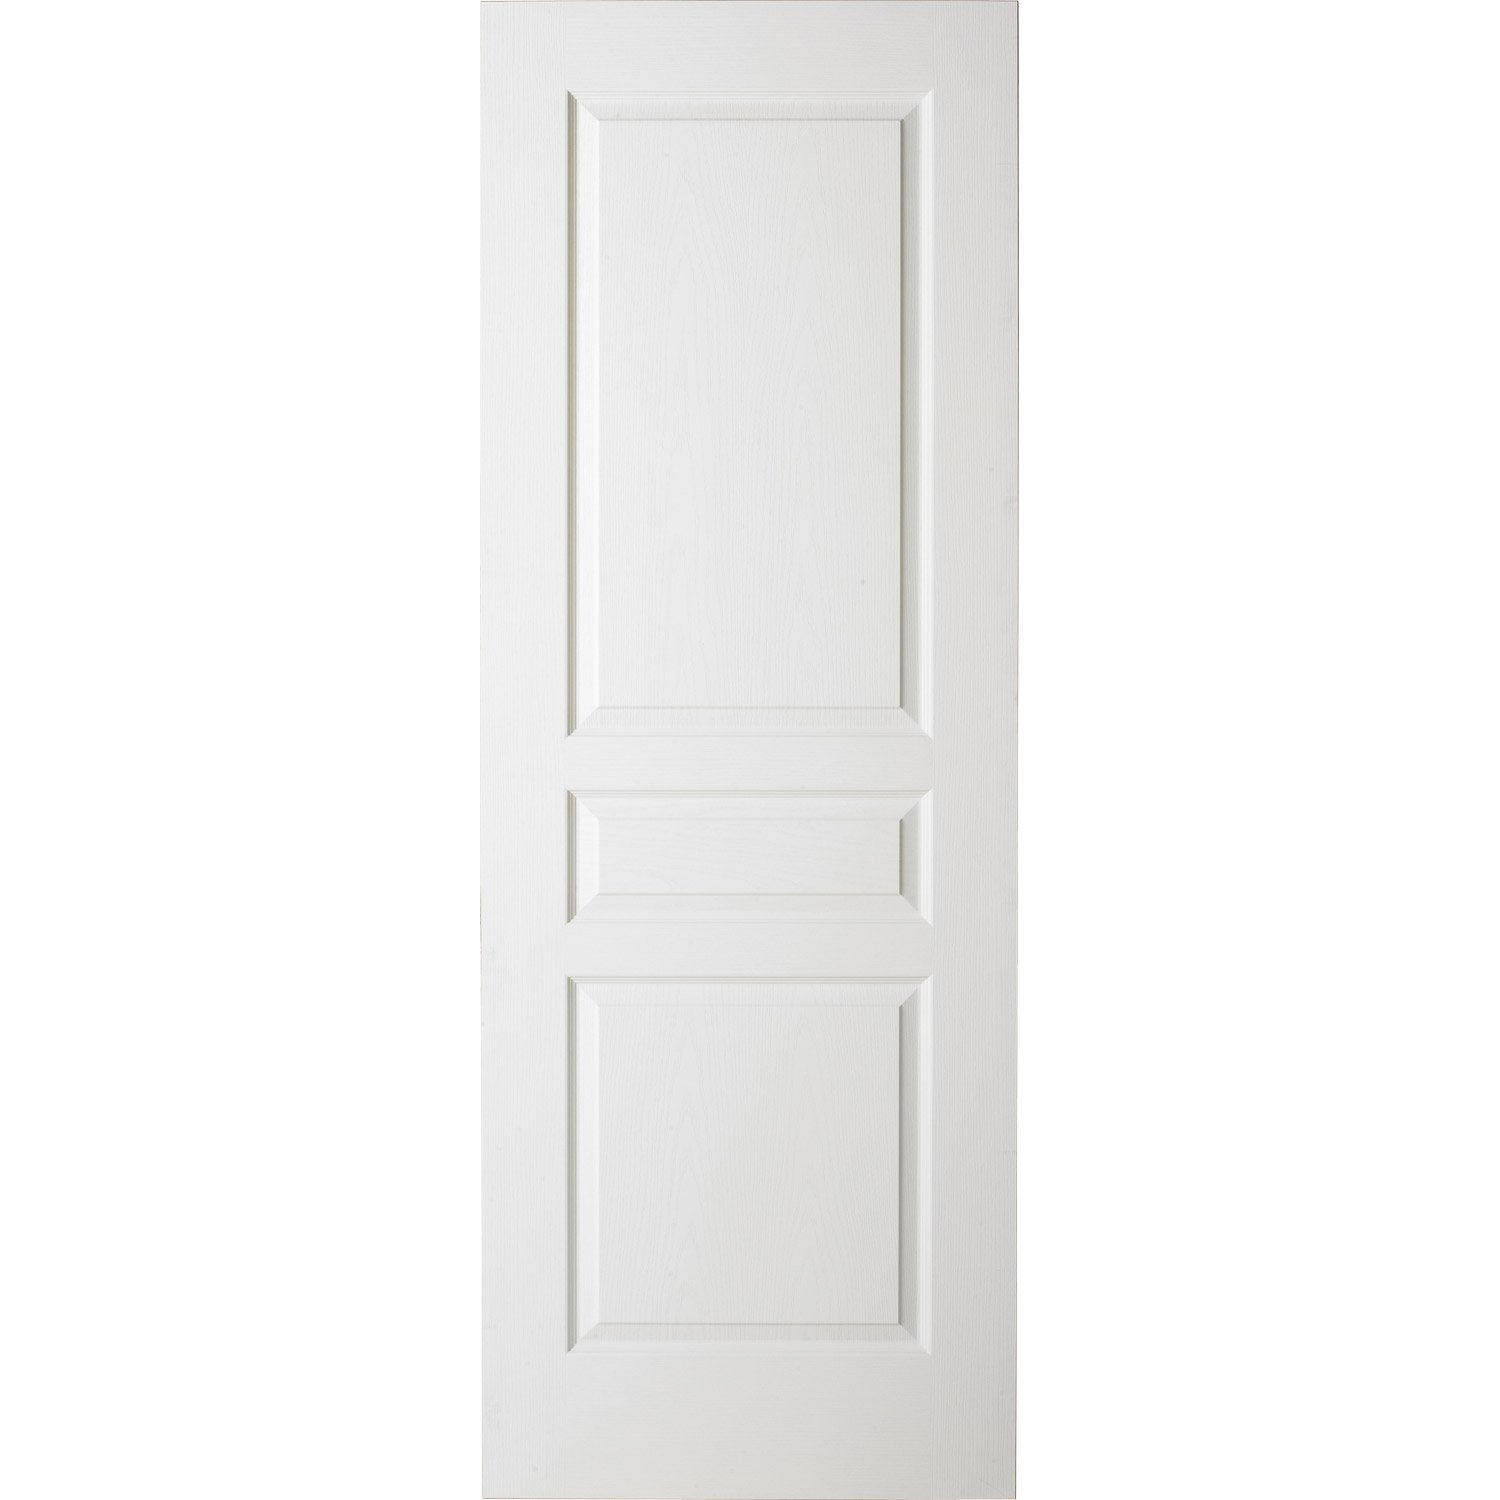 Porte coulissante postform e x cm leroy merlin for Largeur porte interieur standard